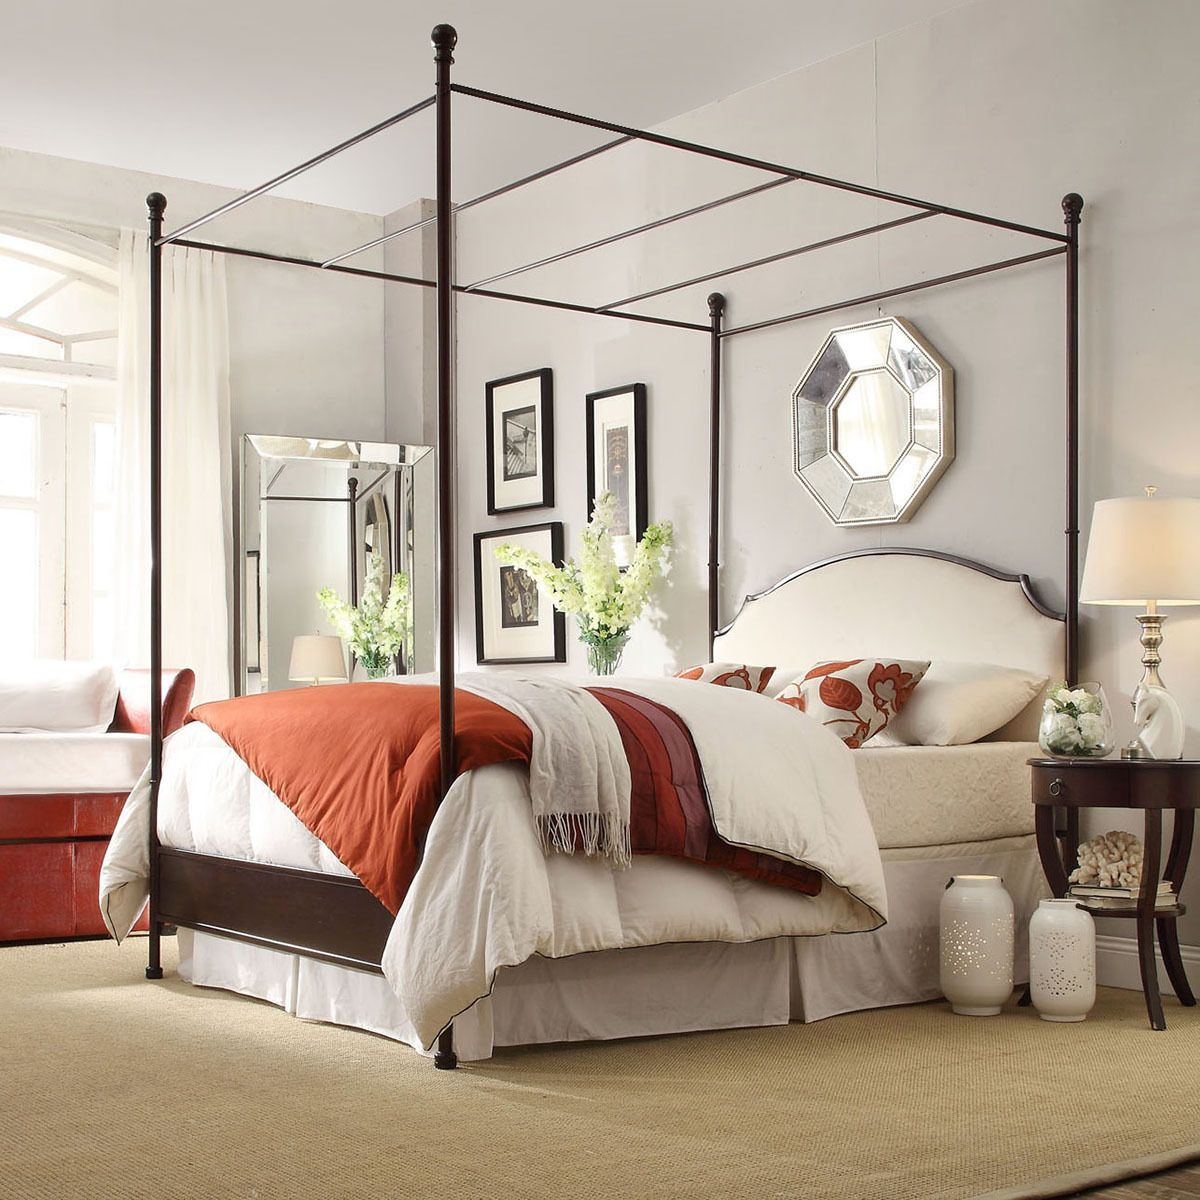 Andover Cream White Curved Top Cherry Brown Metal Canopy Poster Bed by  iNSPIRE Q Classic by iNSPIRE Q